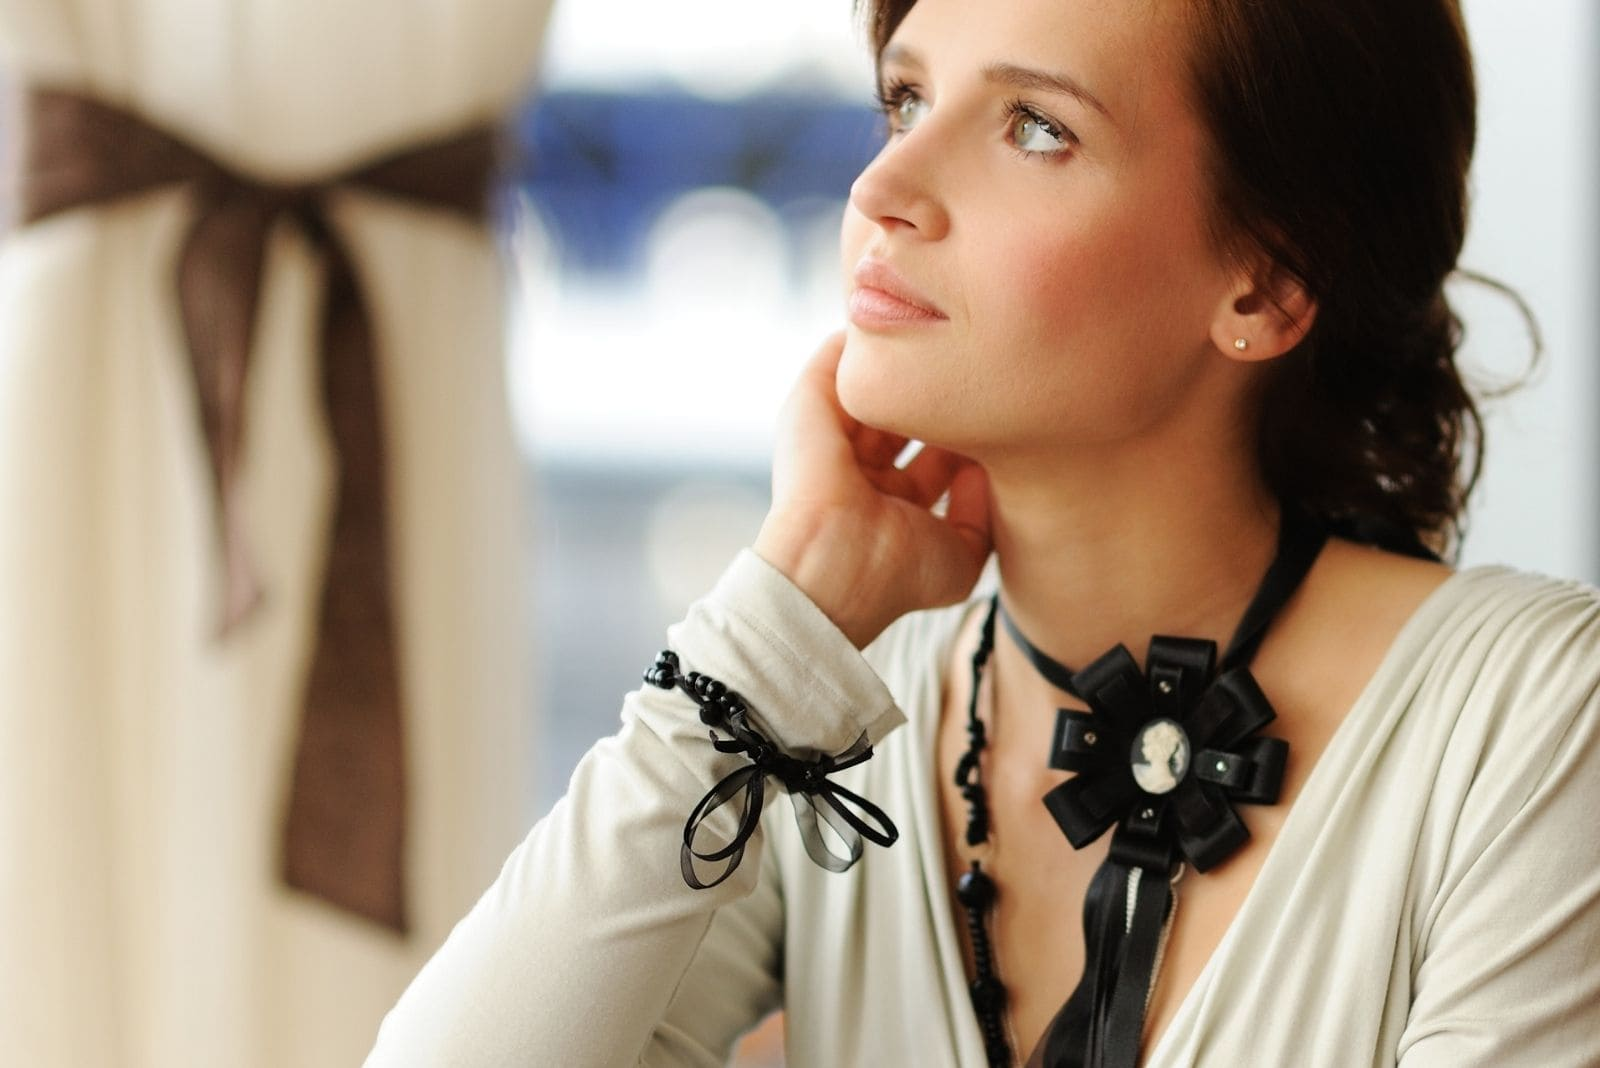 beautiful brunnette woman thinking deeply sitting and wearing a black ribbon